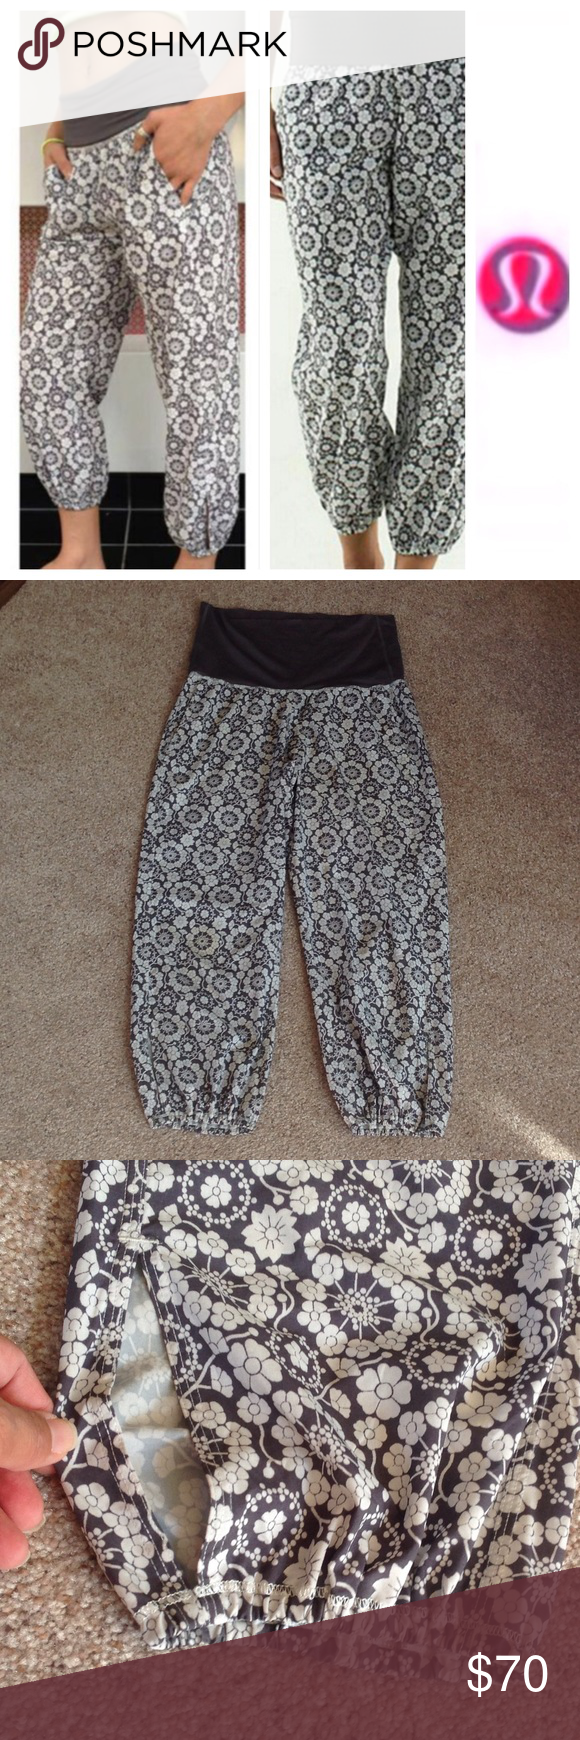 """Lululemon om pants Like new. Probably worn just once. Tag got cut off but these are size 10. Inseam is 25"""" long. Waist measures 15.5"""" across  laying flat without a stretch.     .                                             e lululemon athletica Pants Ankle & Cropped"""